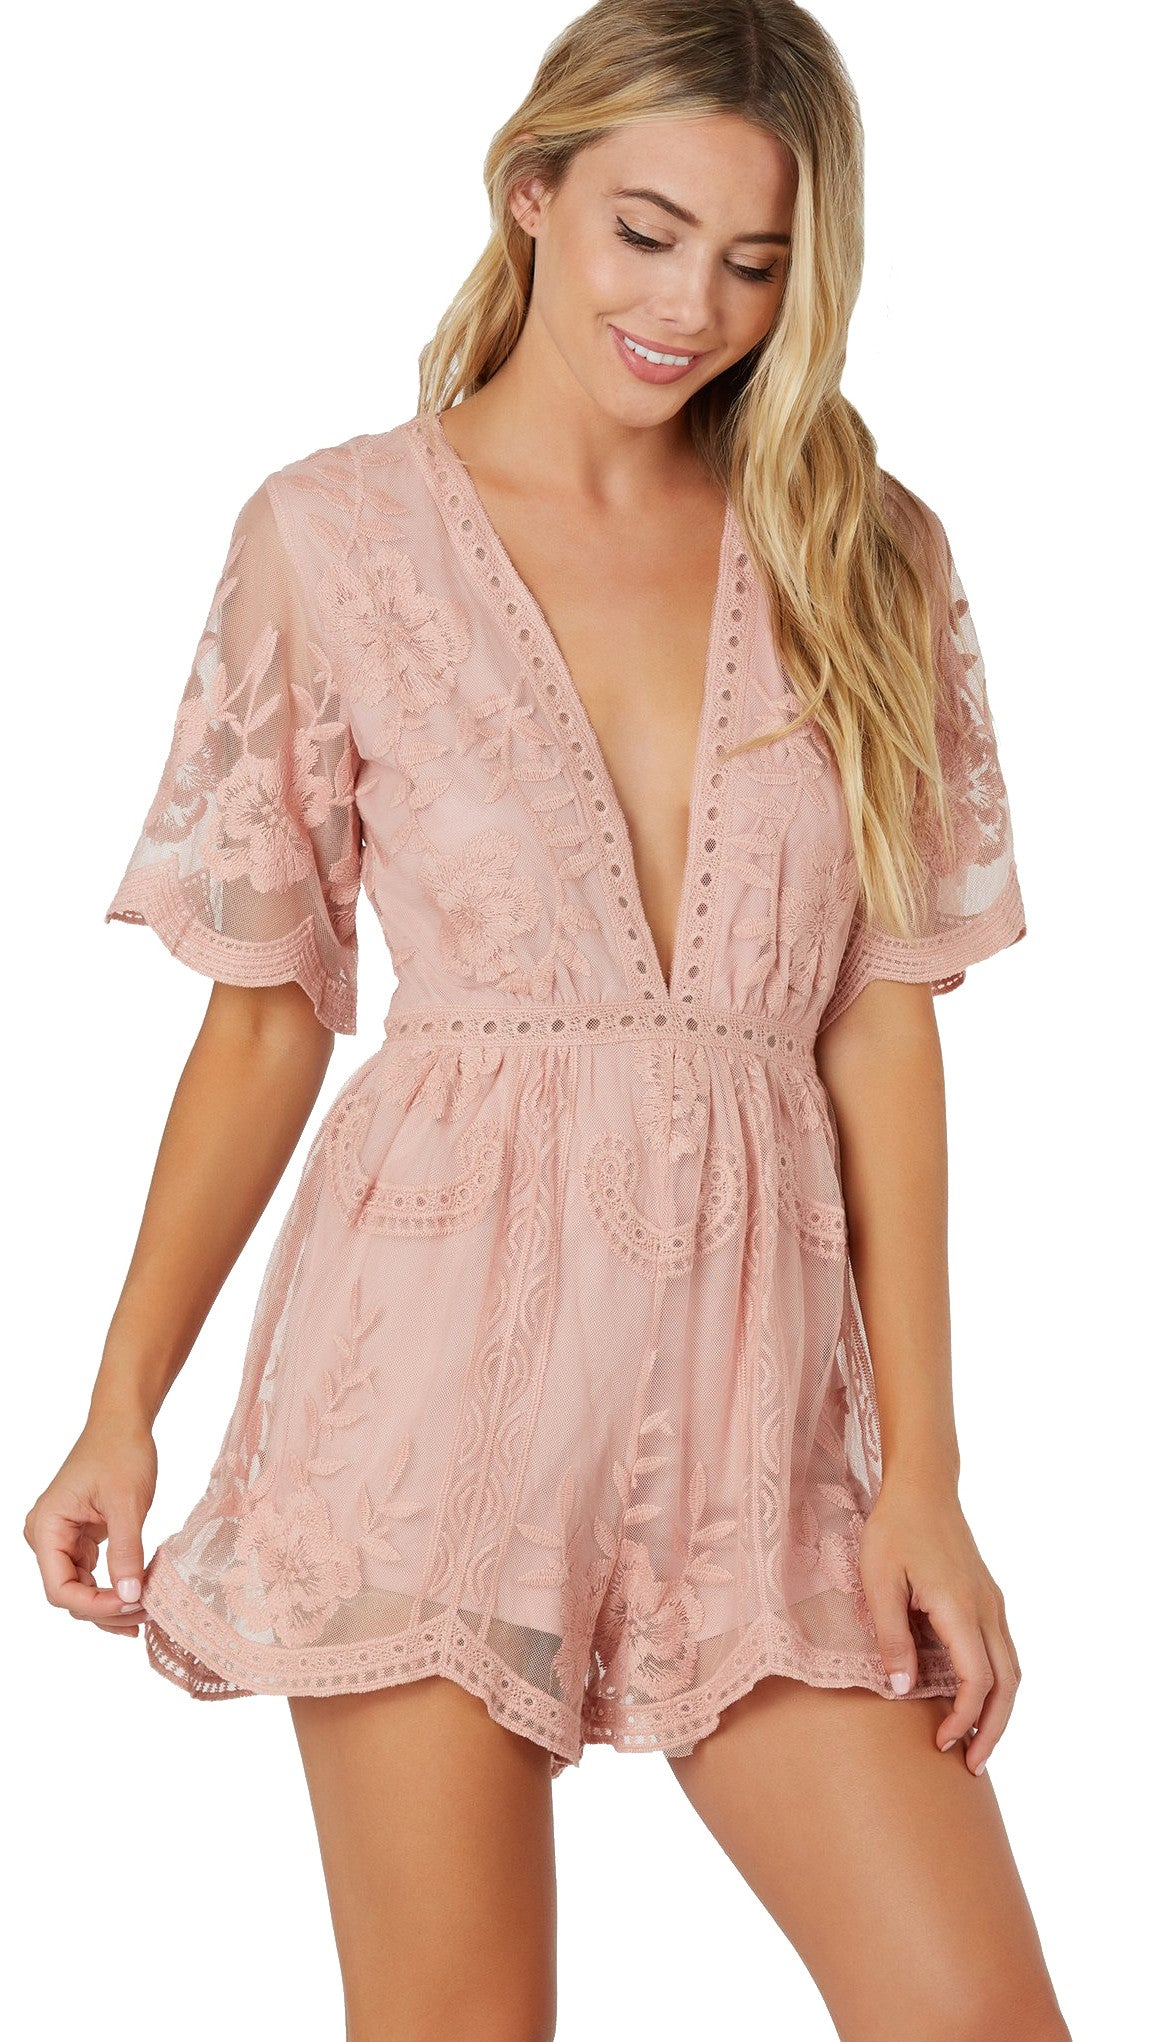 Antique Embroidered Crochet Romper Pink Sheer Lace from ShopAA